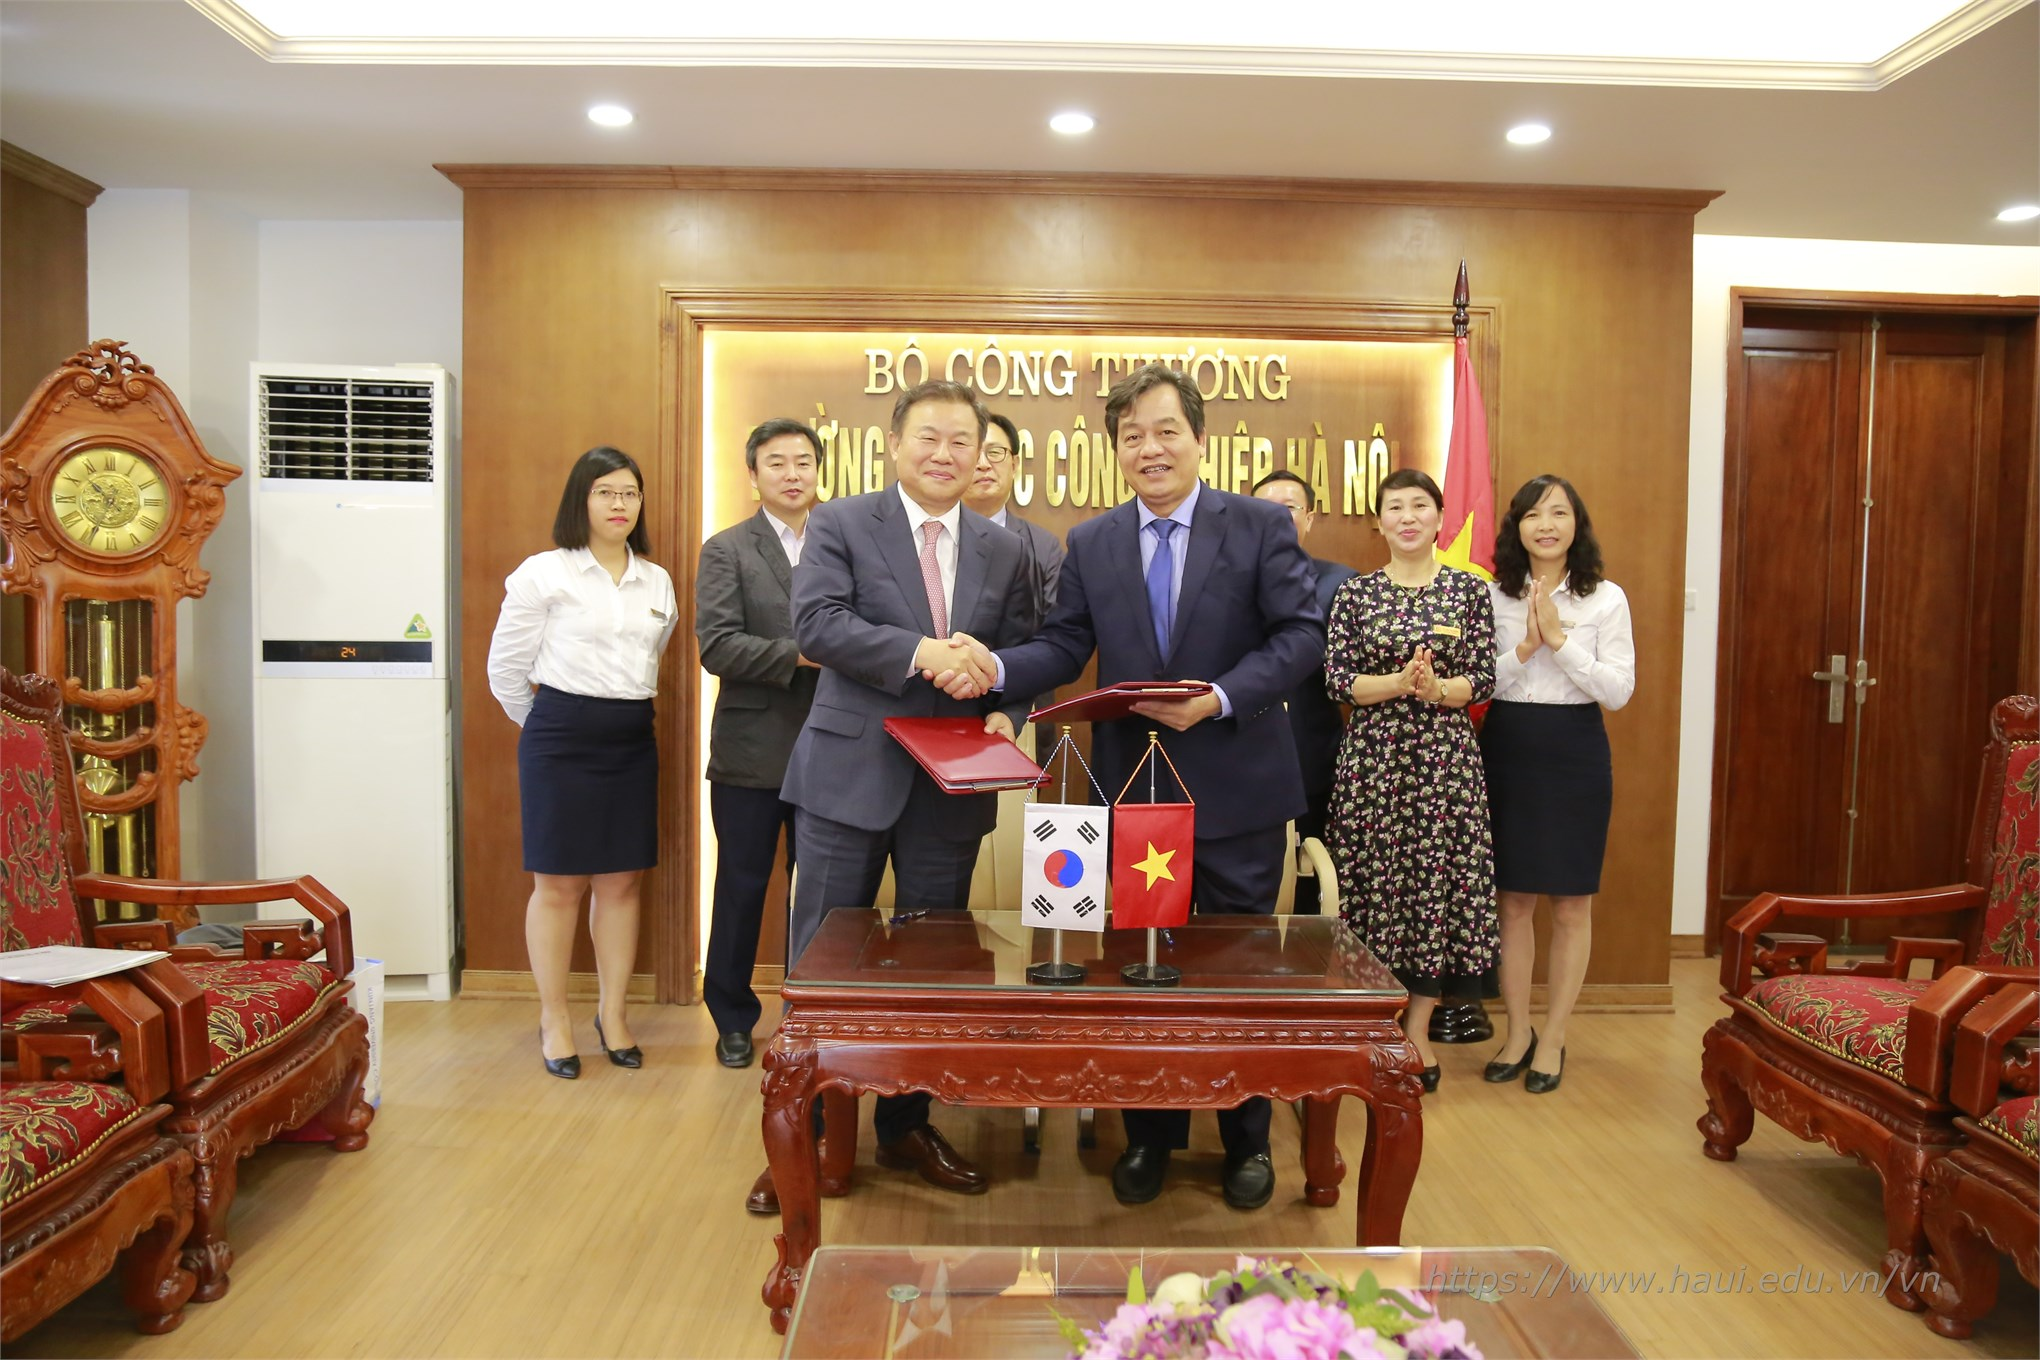 Hanoi University of Industry signed a cooperation agreement with Kunjang College - Korea